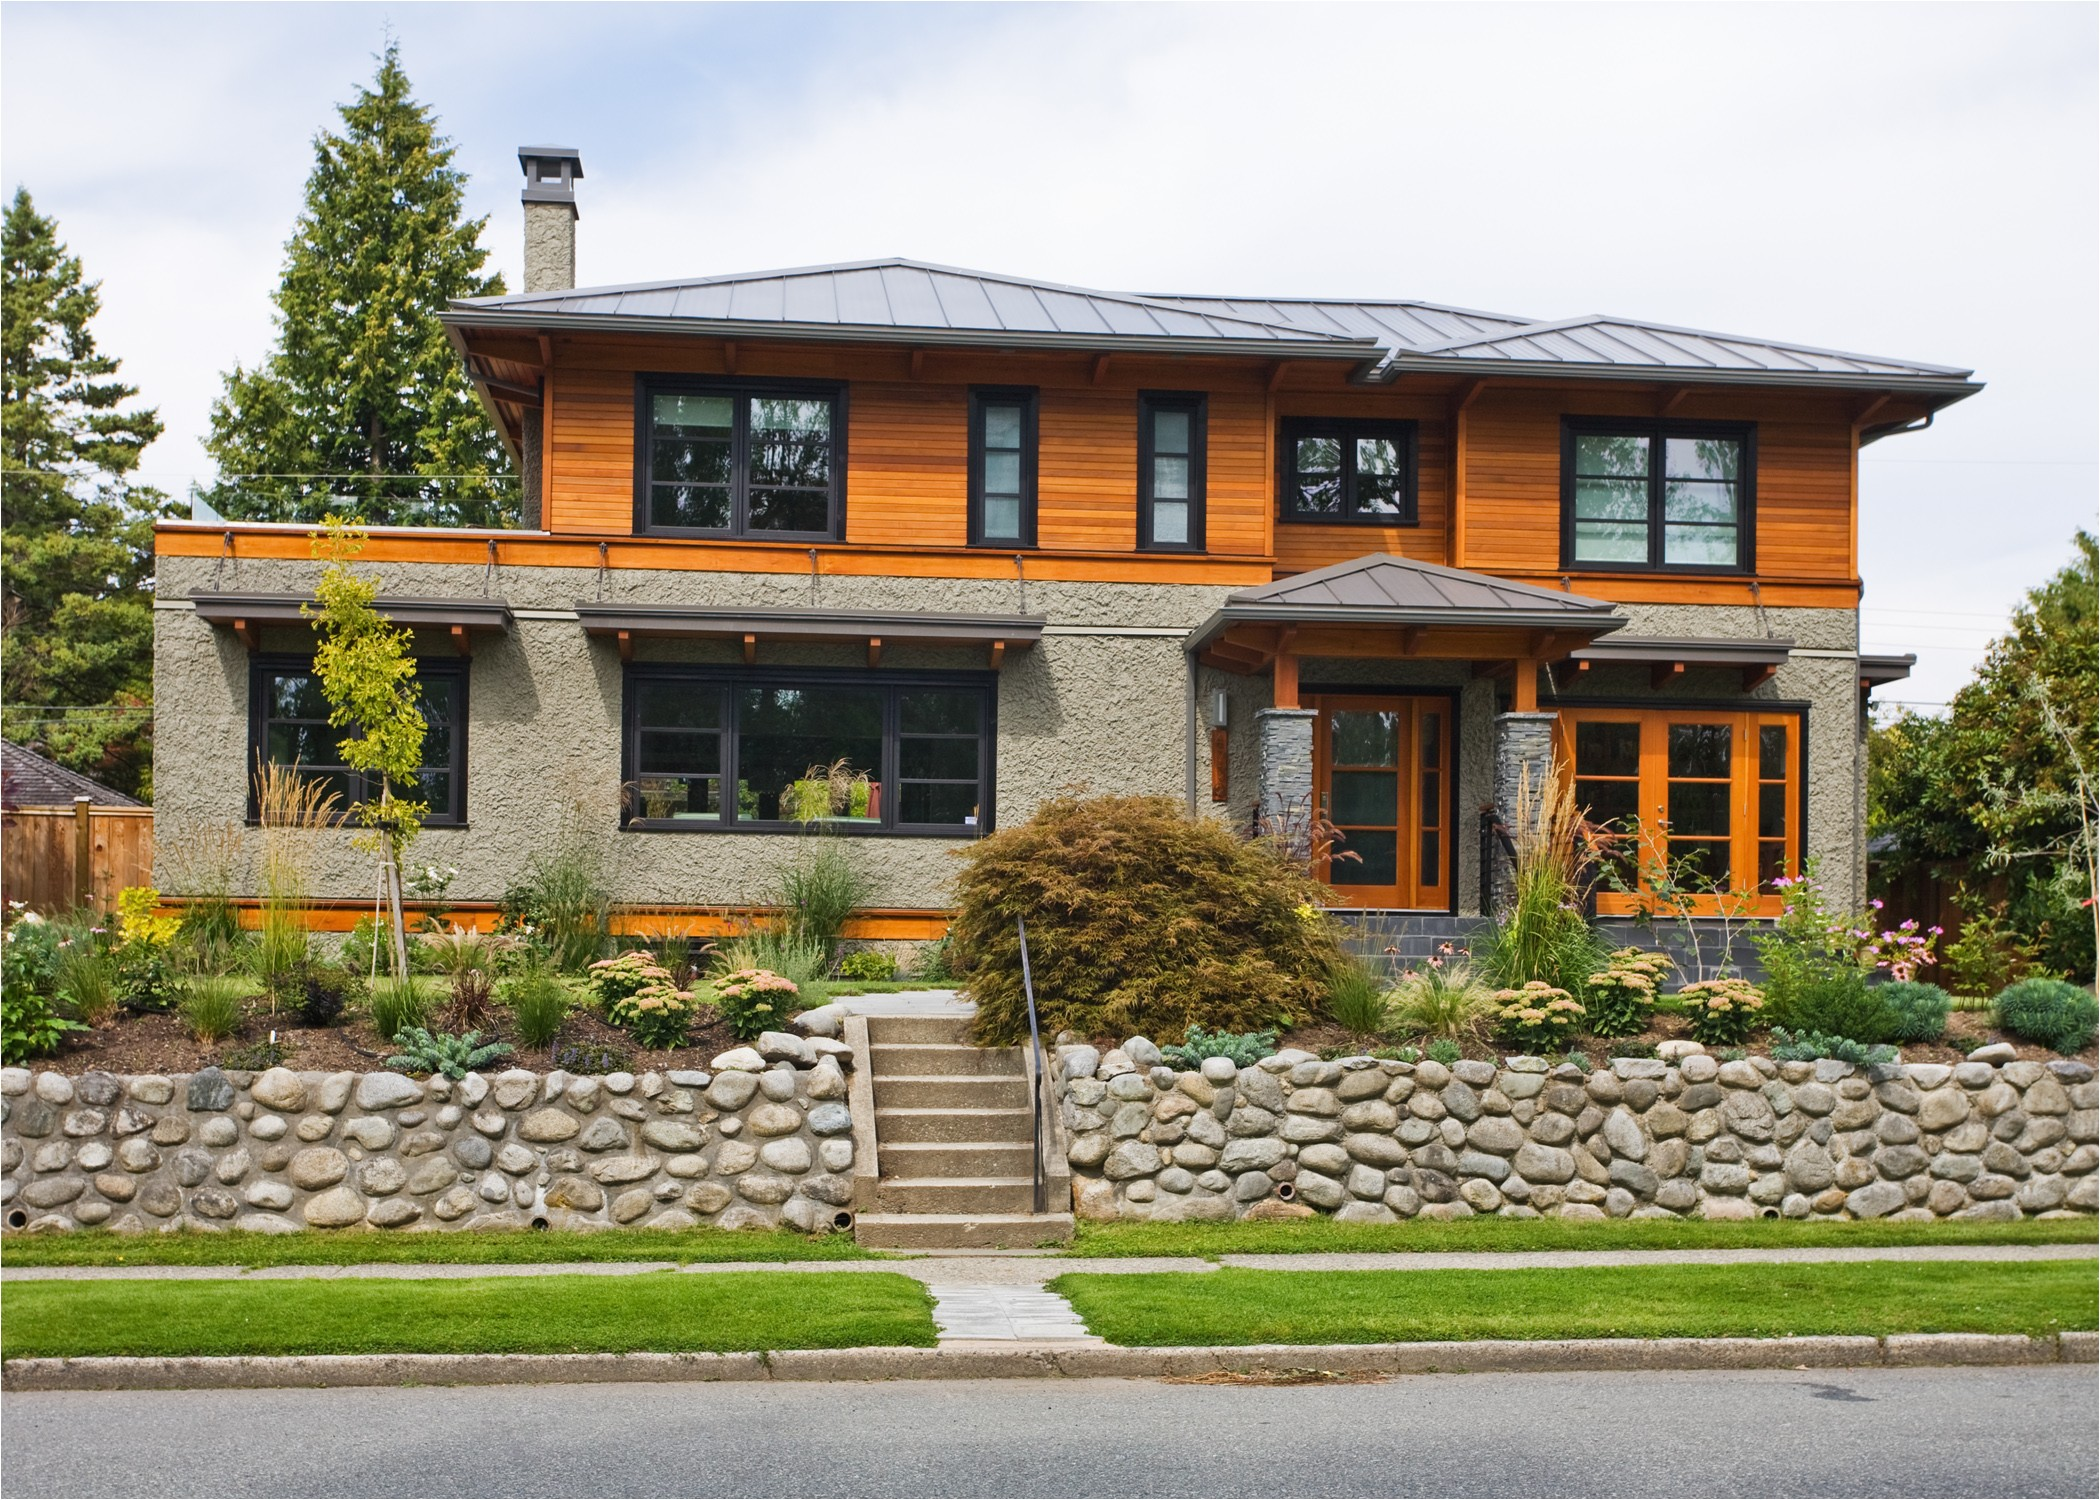 home owner wished capture west coast contemporary style